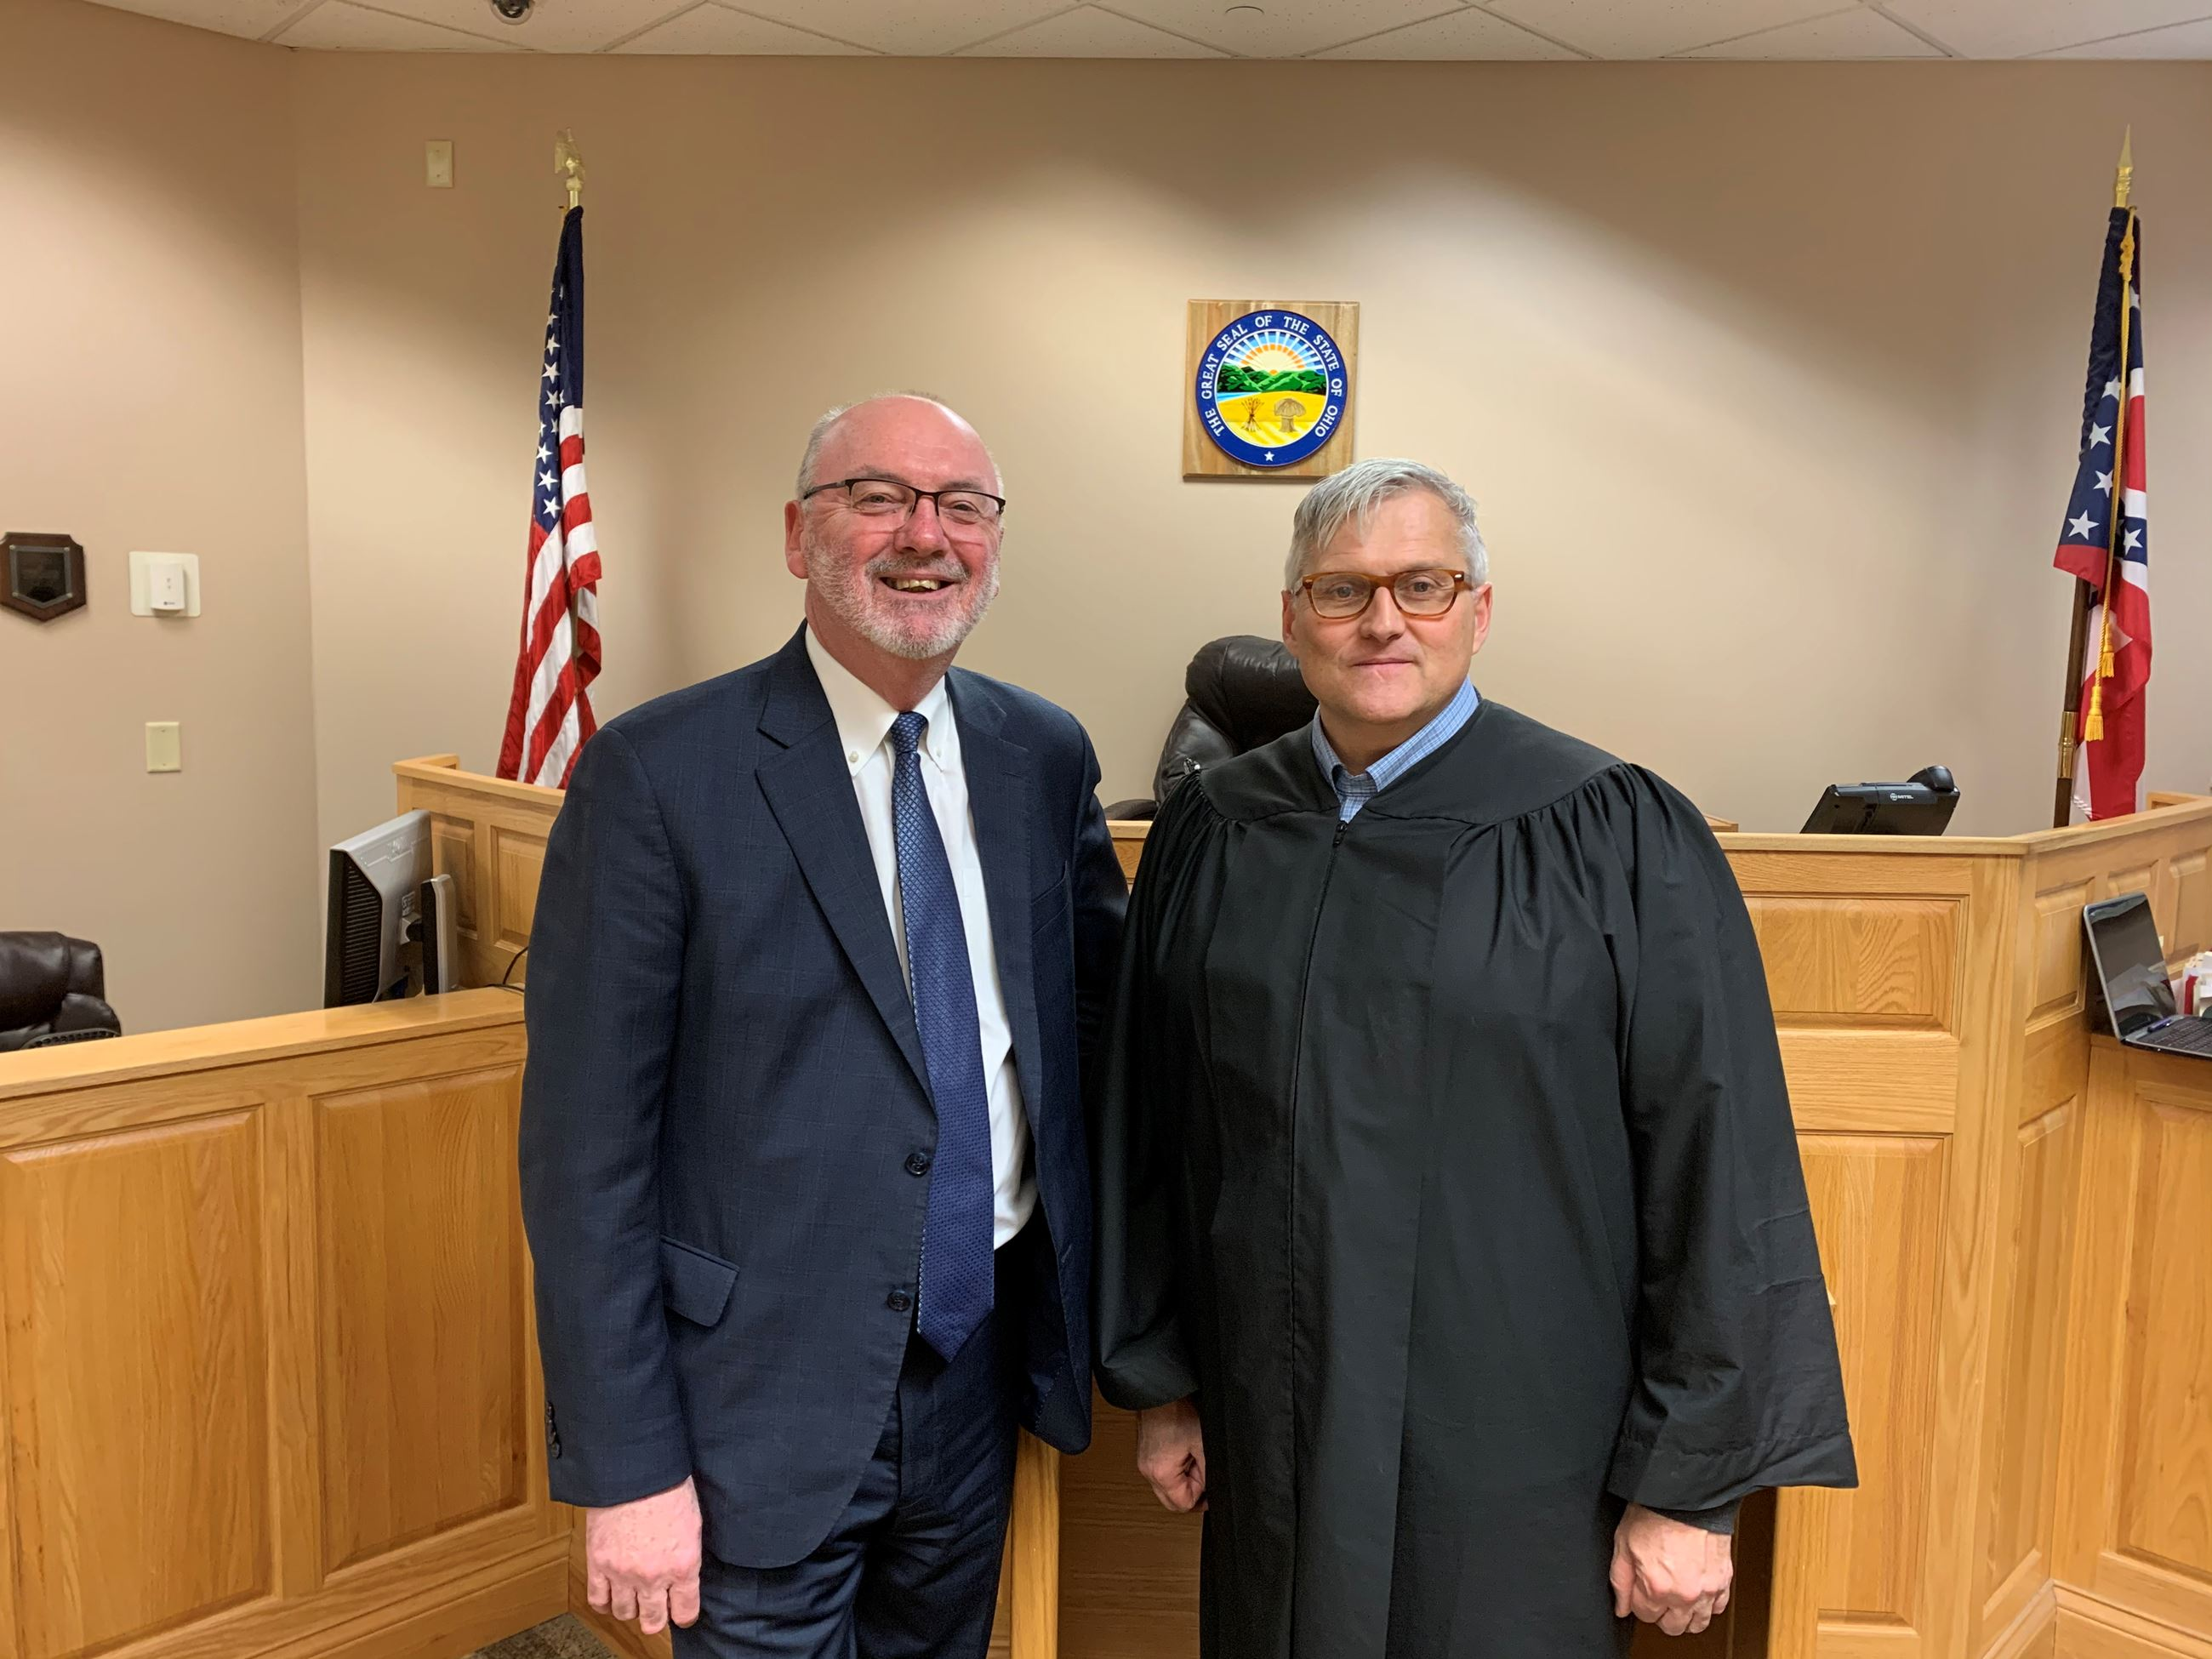 Judge Ron Lewis, Clerk of Court Steve Pierson